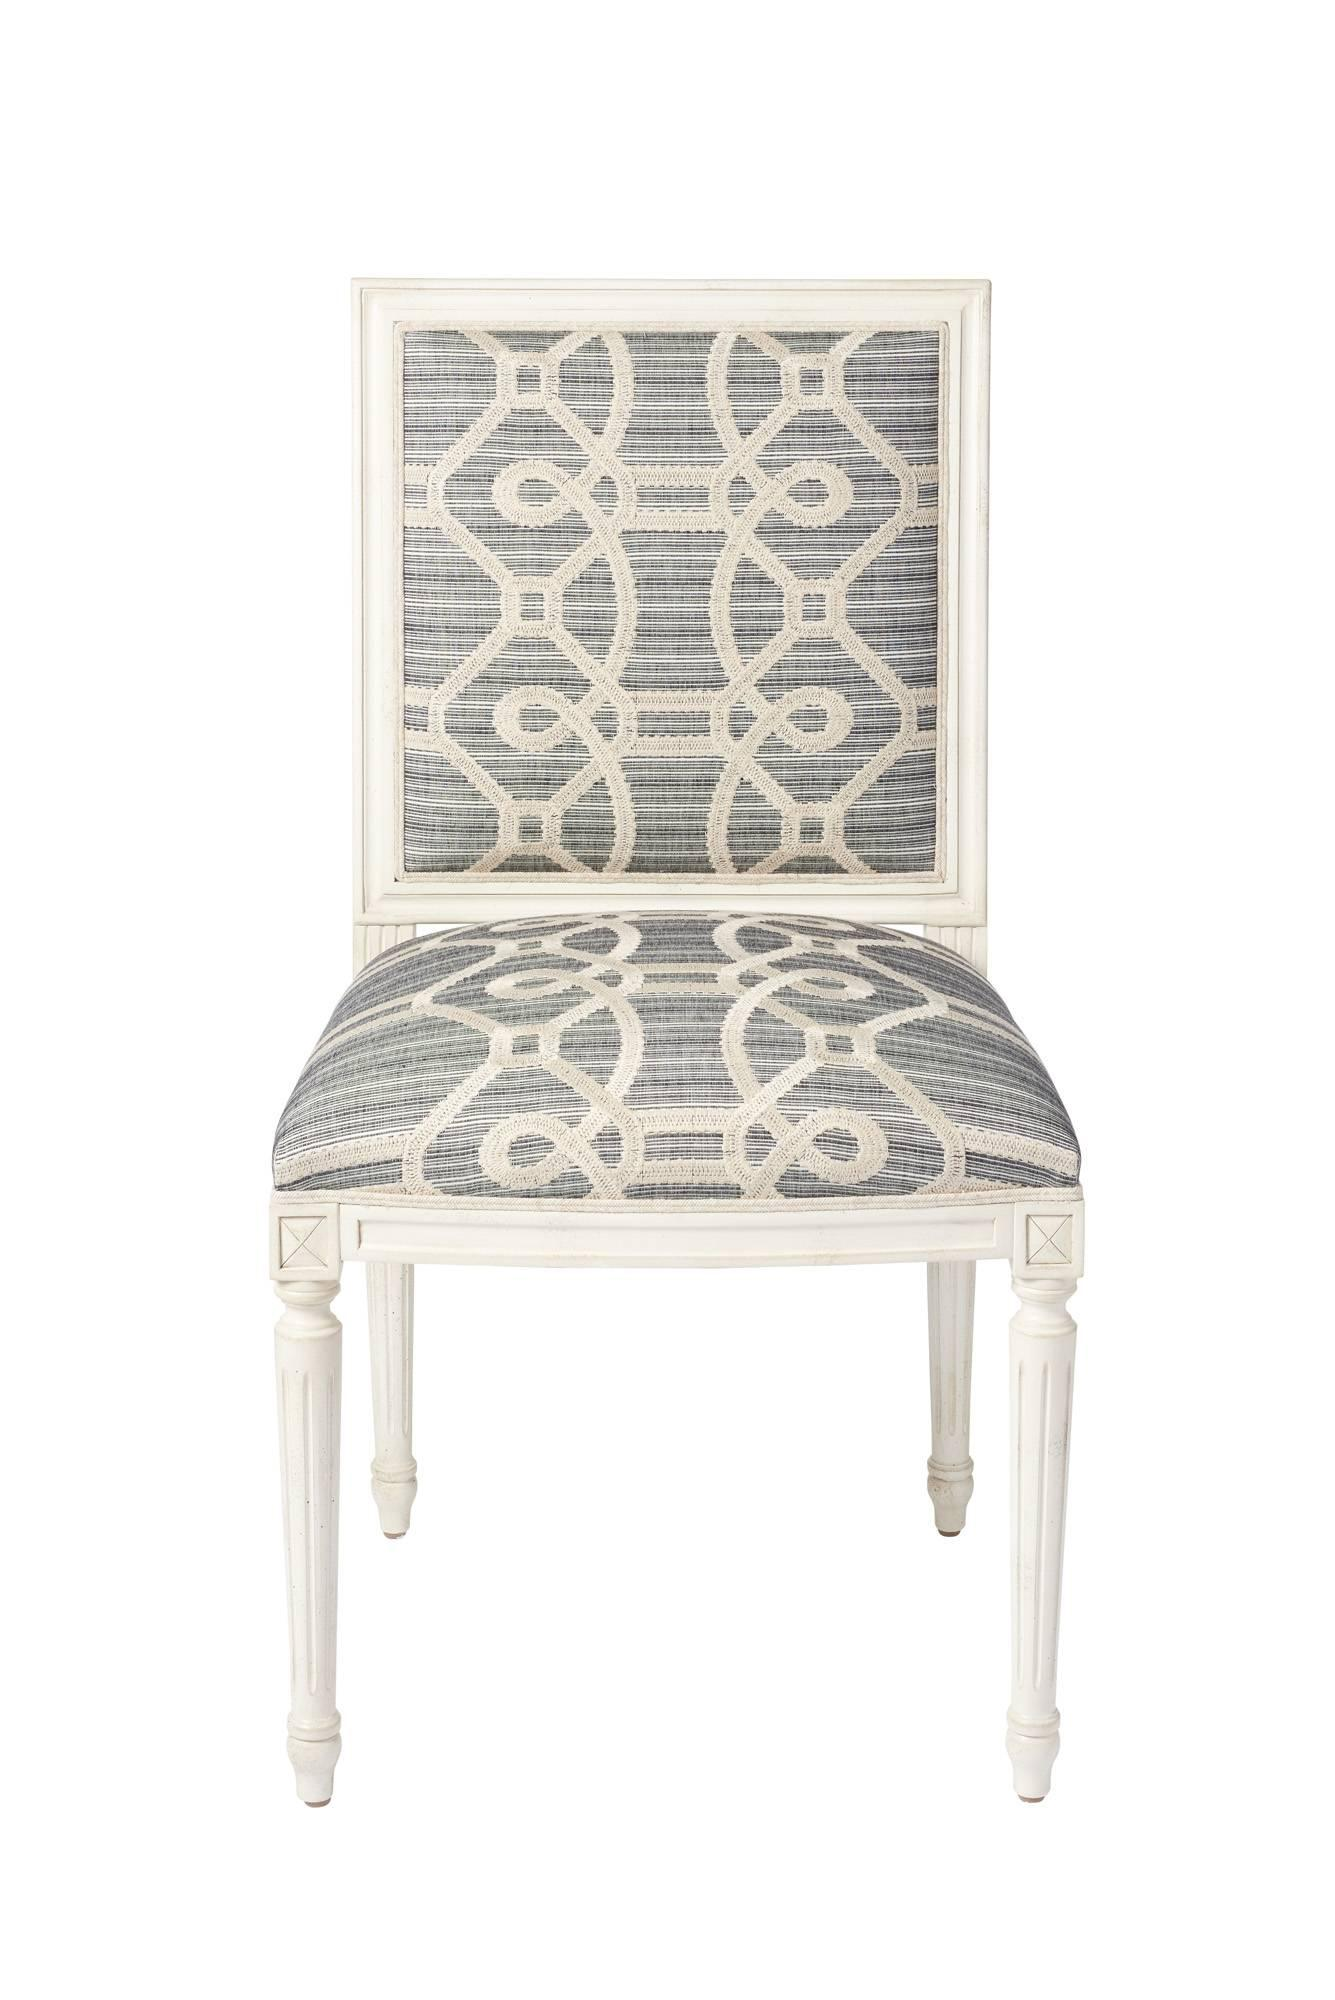 Attrayant Schumacher Marie Therese Ziz Embroidery Strié Hand Carved Beechwood Side  Chair For Sale At 1stdibs